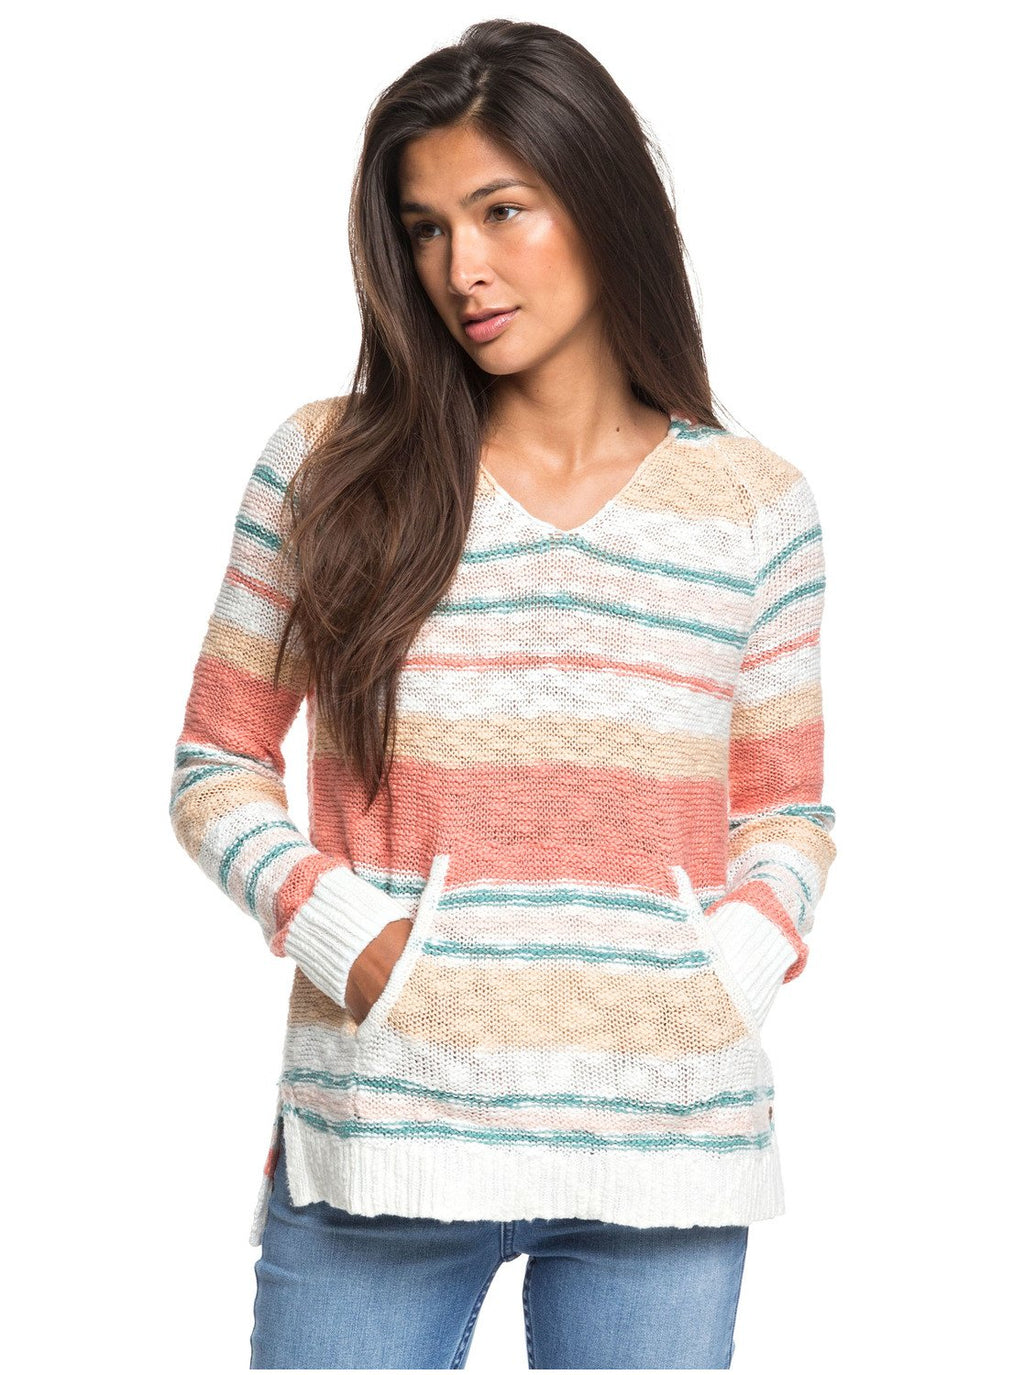 ROXY - LADIES AIRPORT VIBES STRIPED PONCHO